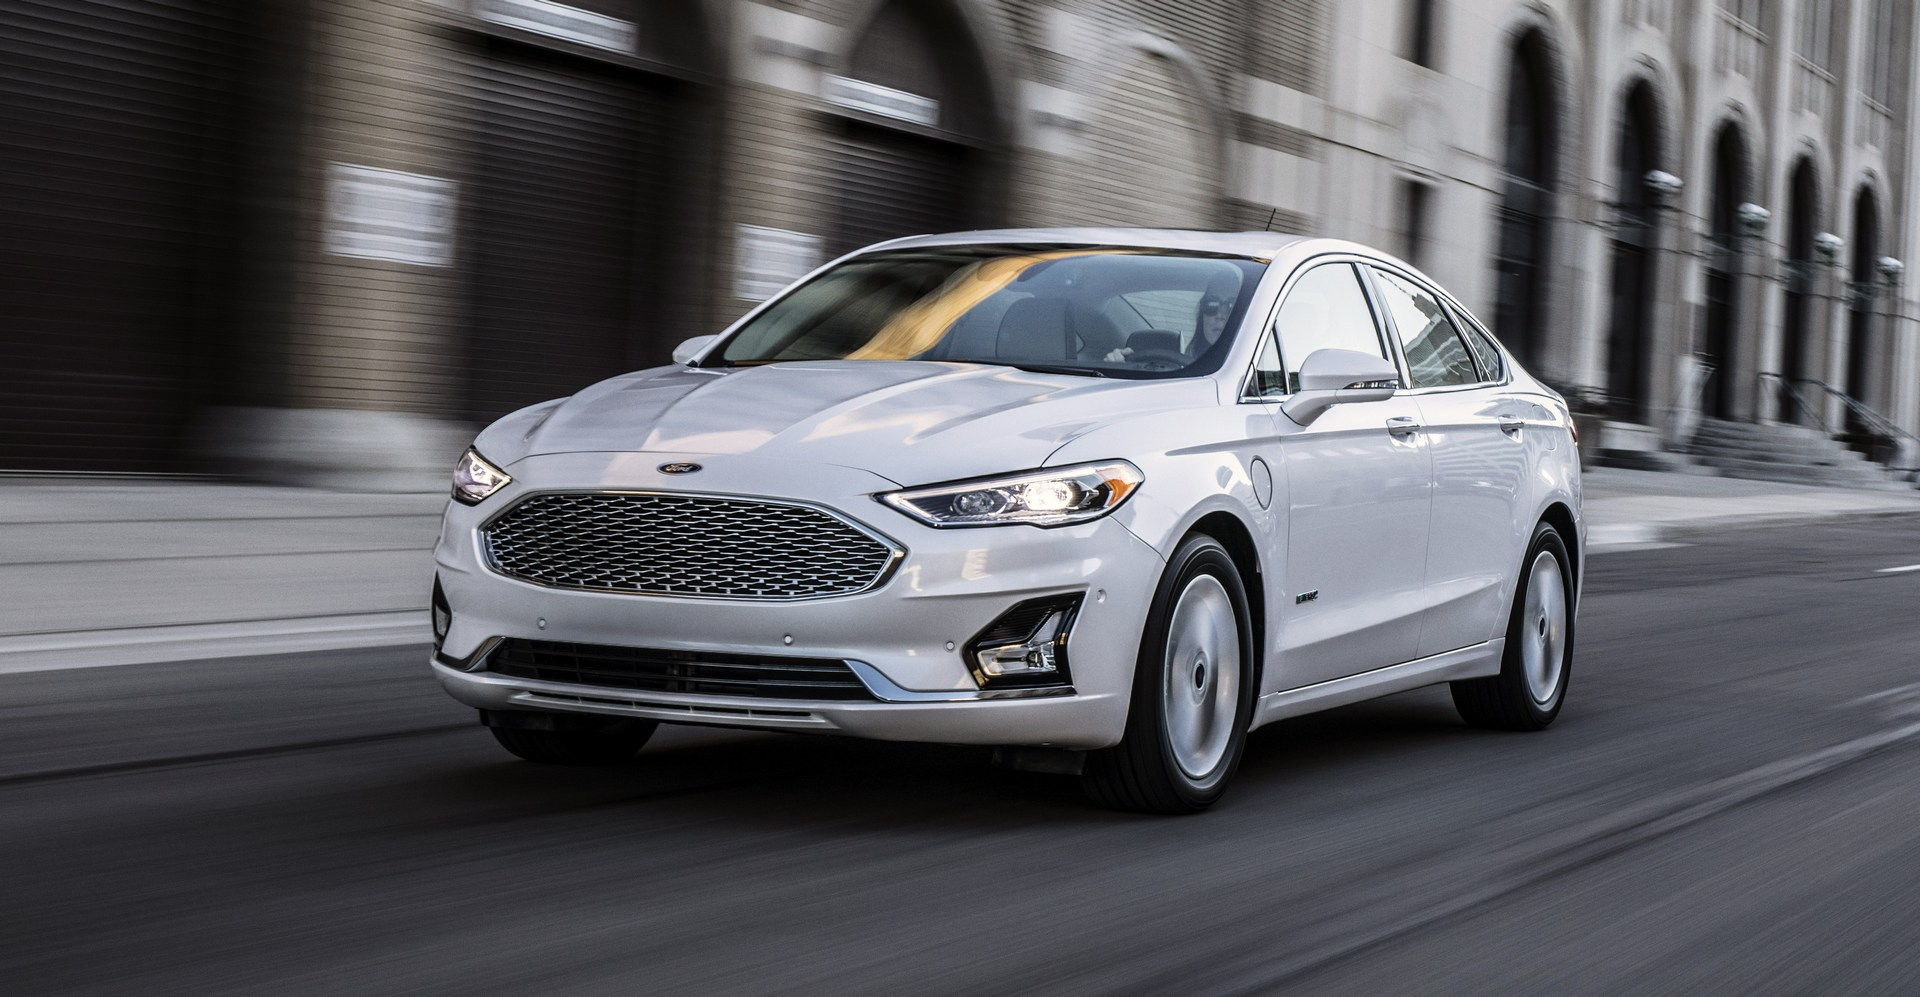 2019 ford fusion debuts with minor design changes more safety tech autoevolution. Black Bedroom Furniture Sets. Home Design Ideas